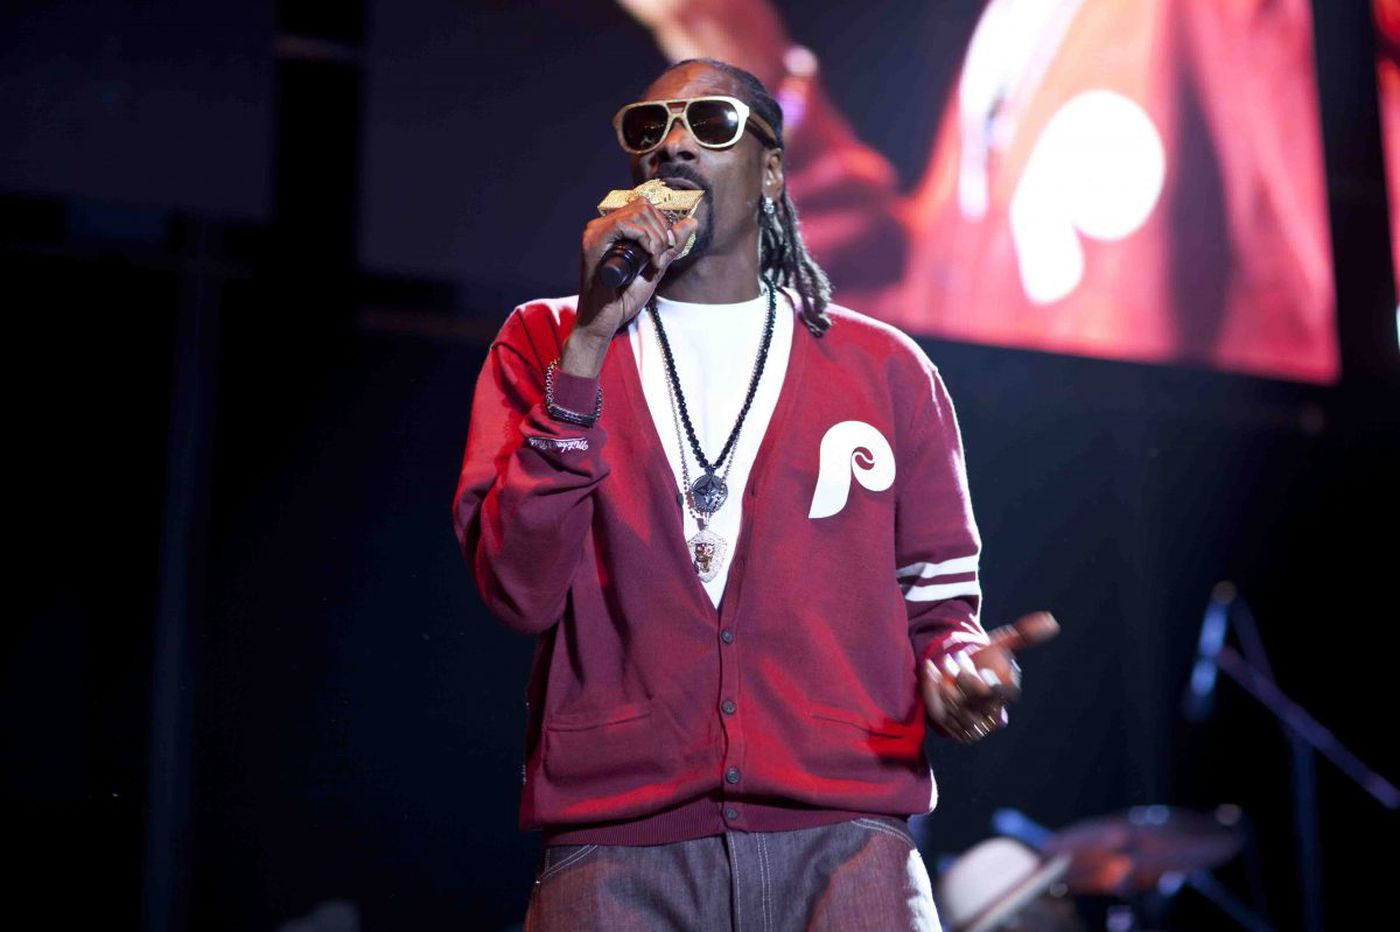 Snoop Dogg gives Nick Foles a shoutout in new track, 'Doggytails'